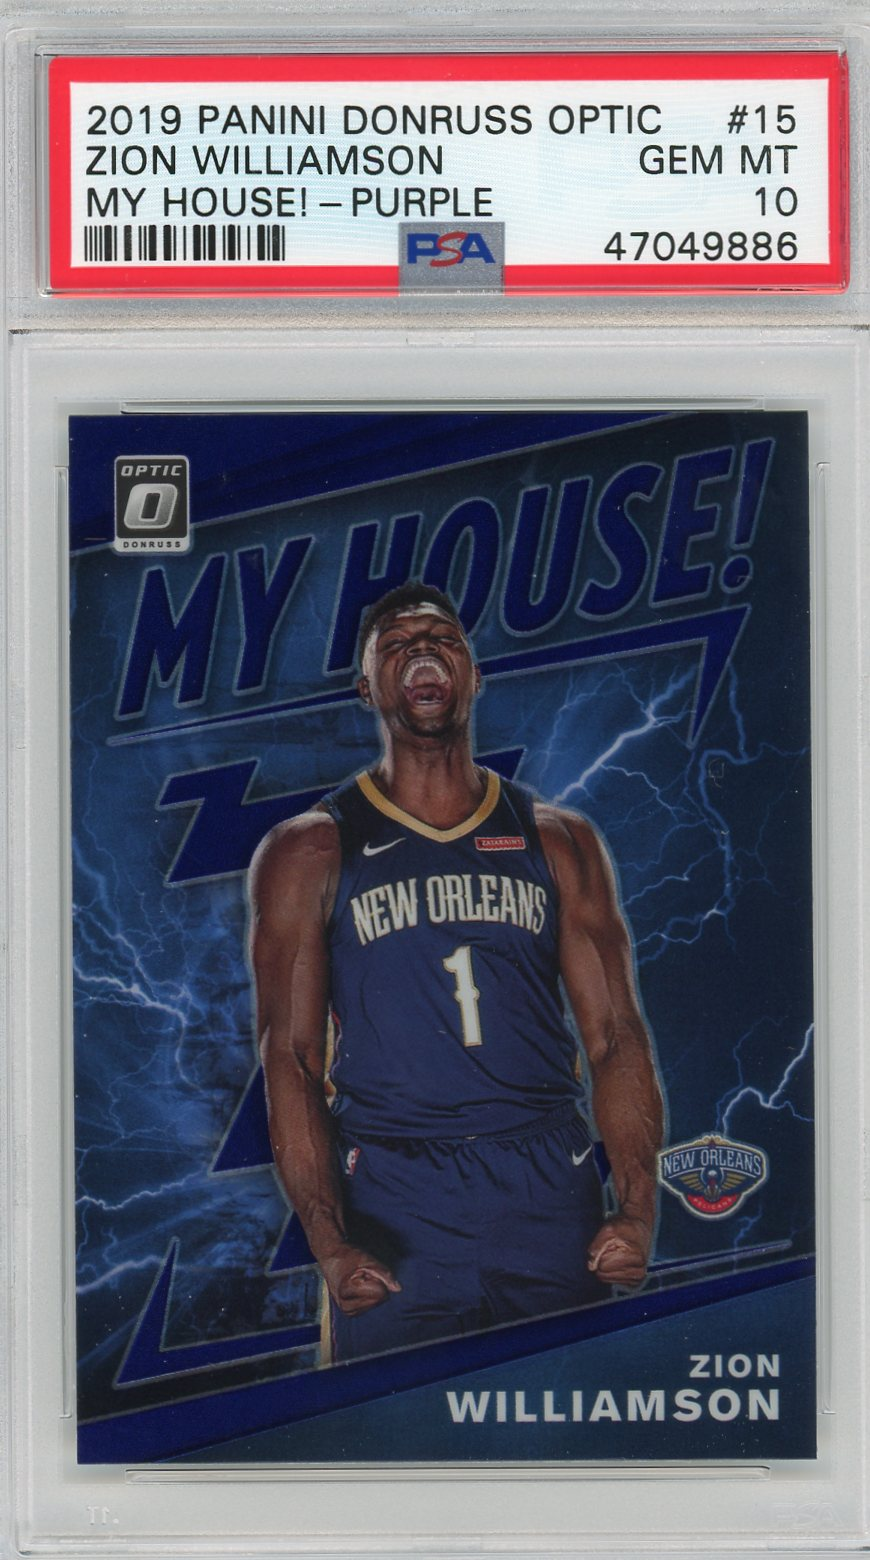 Zion Williamson New Orleans Pelicans 2019 Panini Donruss Optic My House Prizm Basketball Rookie Card RC #15 Graded PSA 10-Powers Sports Memorabilia